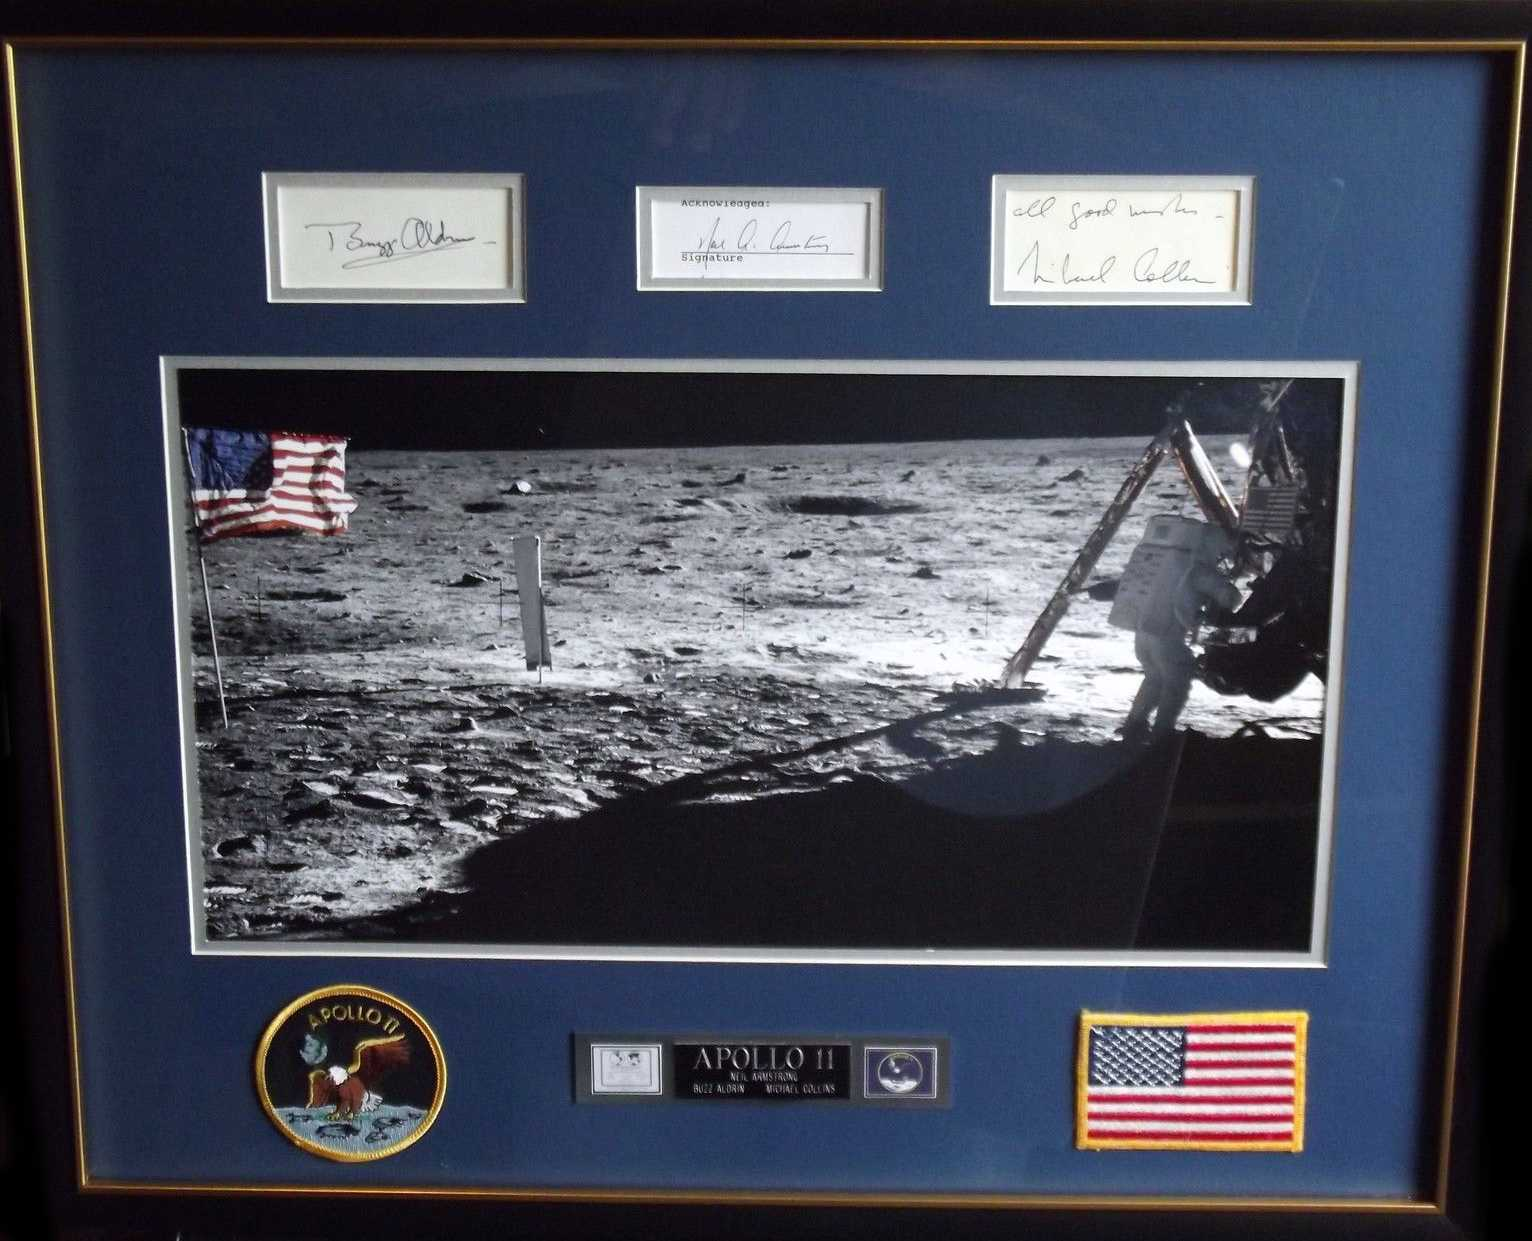 Apollo 11 signature display